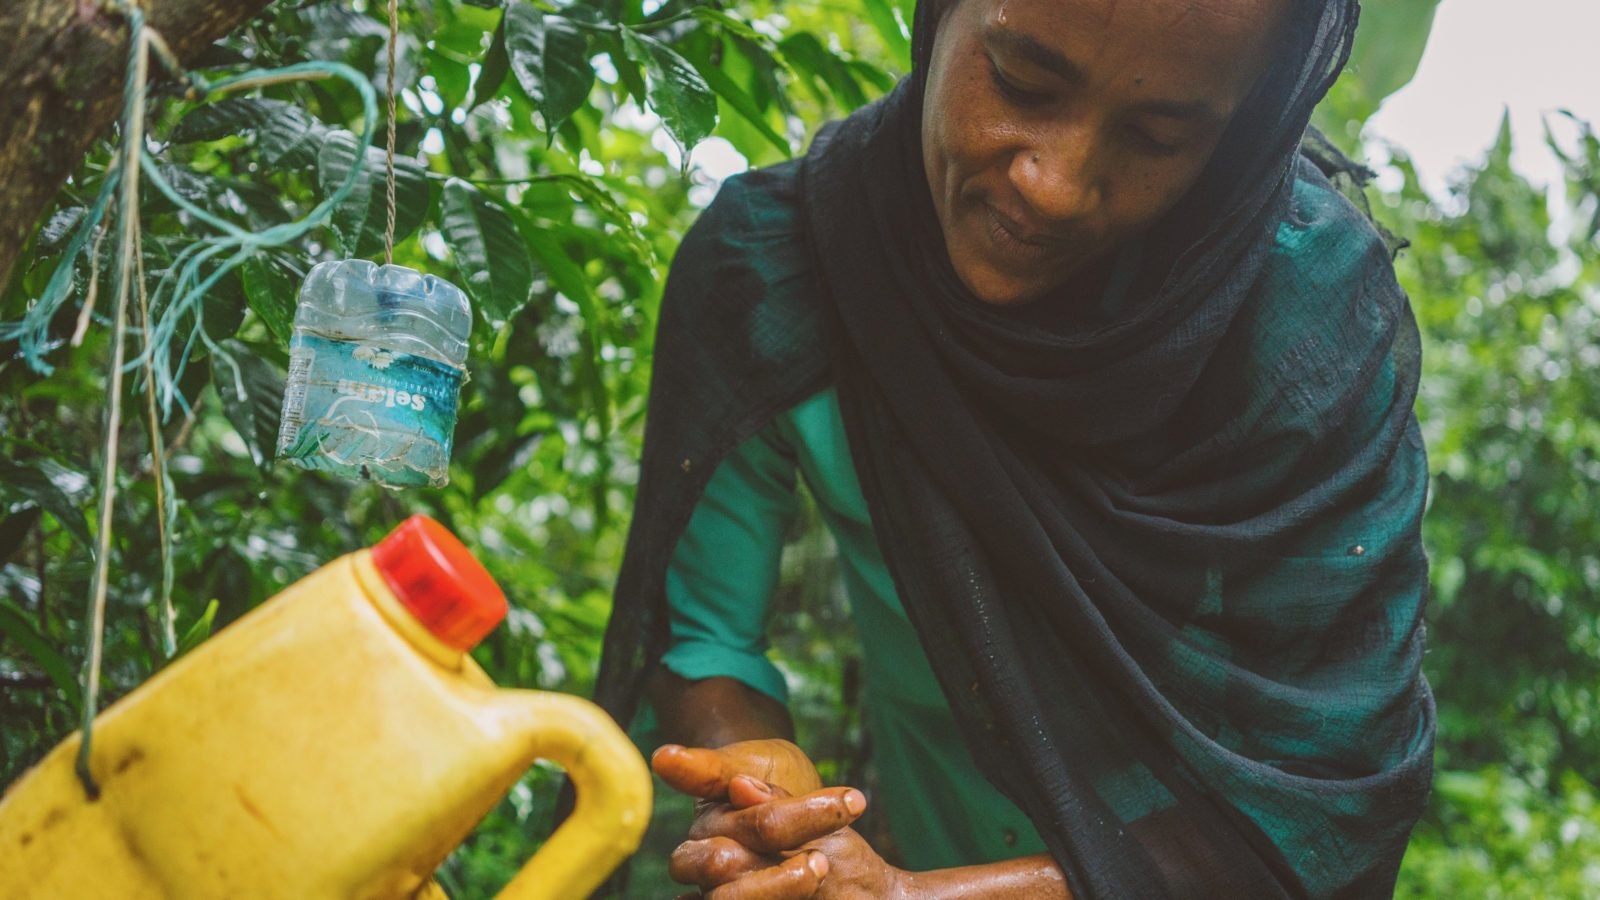 aster and her family are overcoming the Ethiopia water crisis